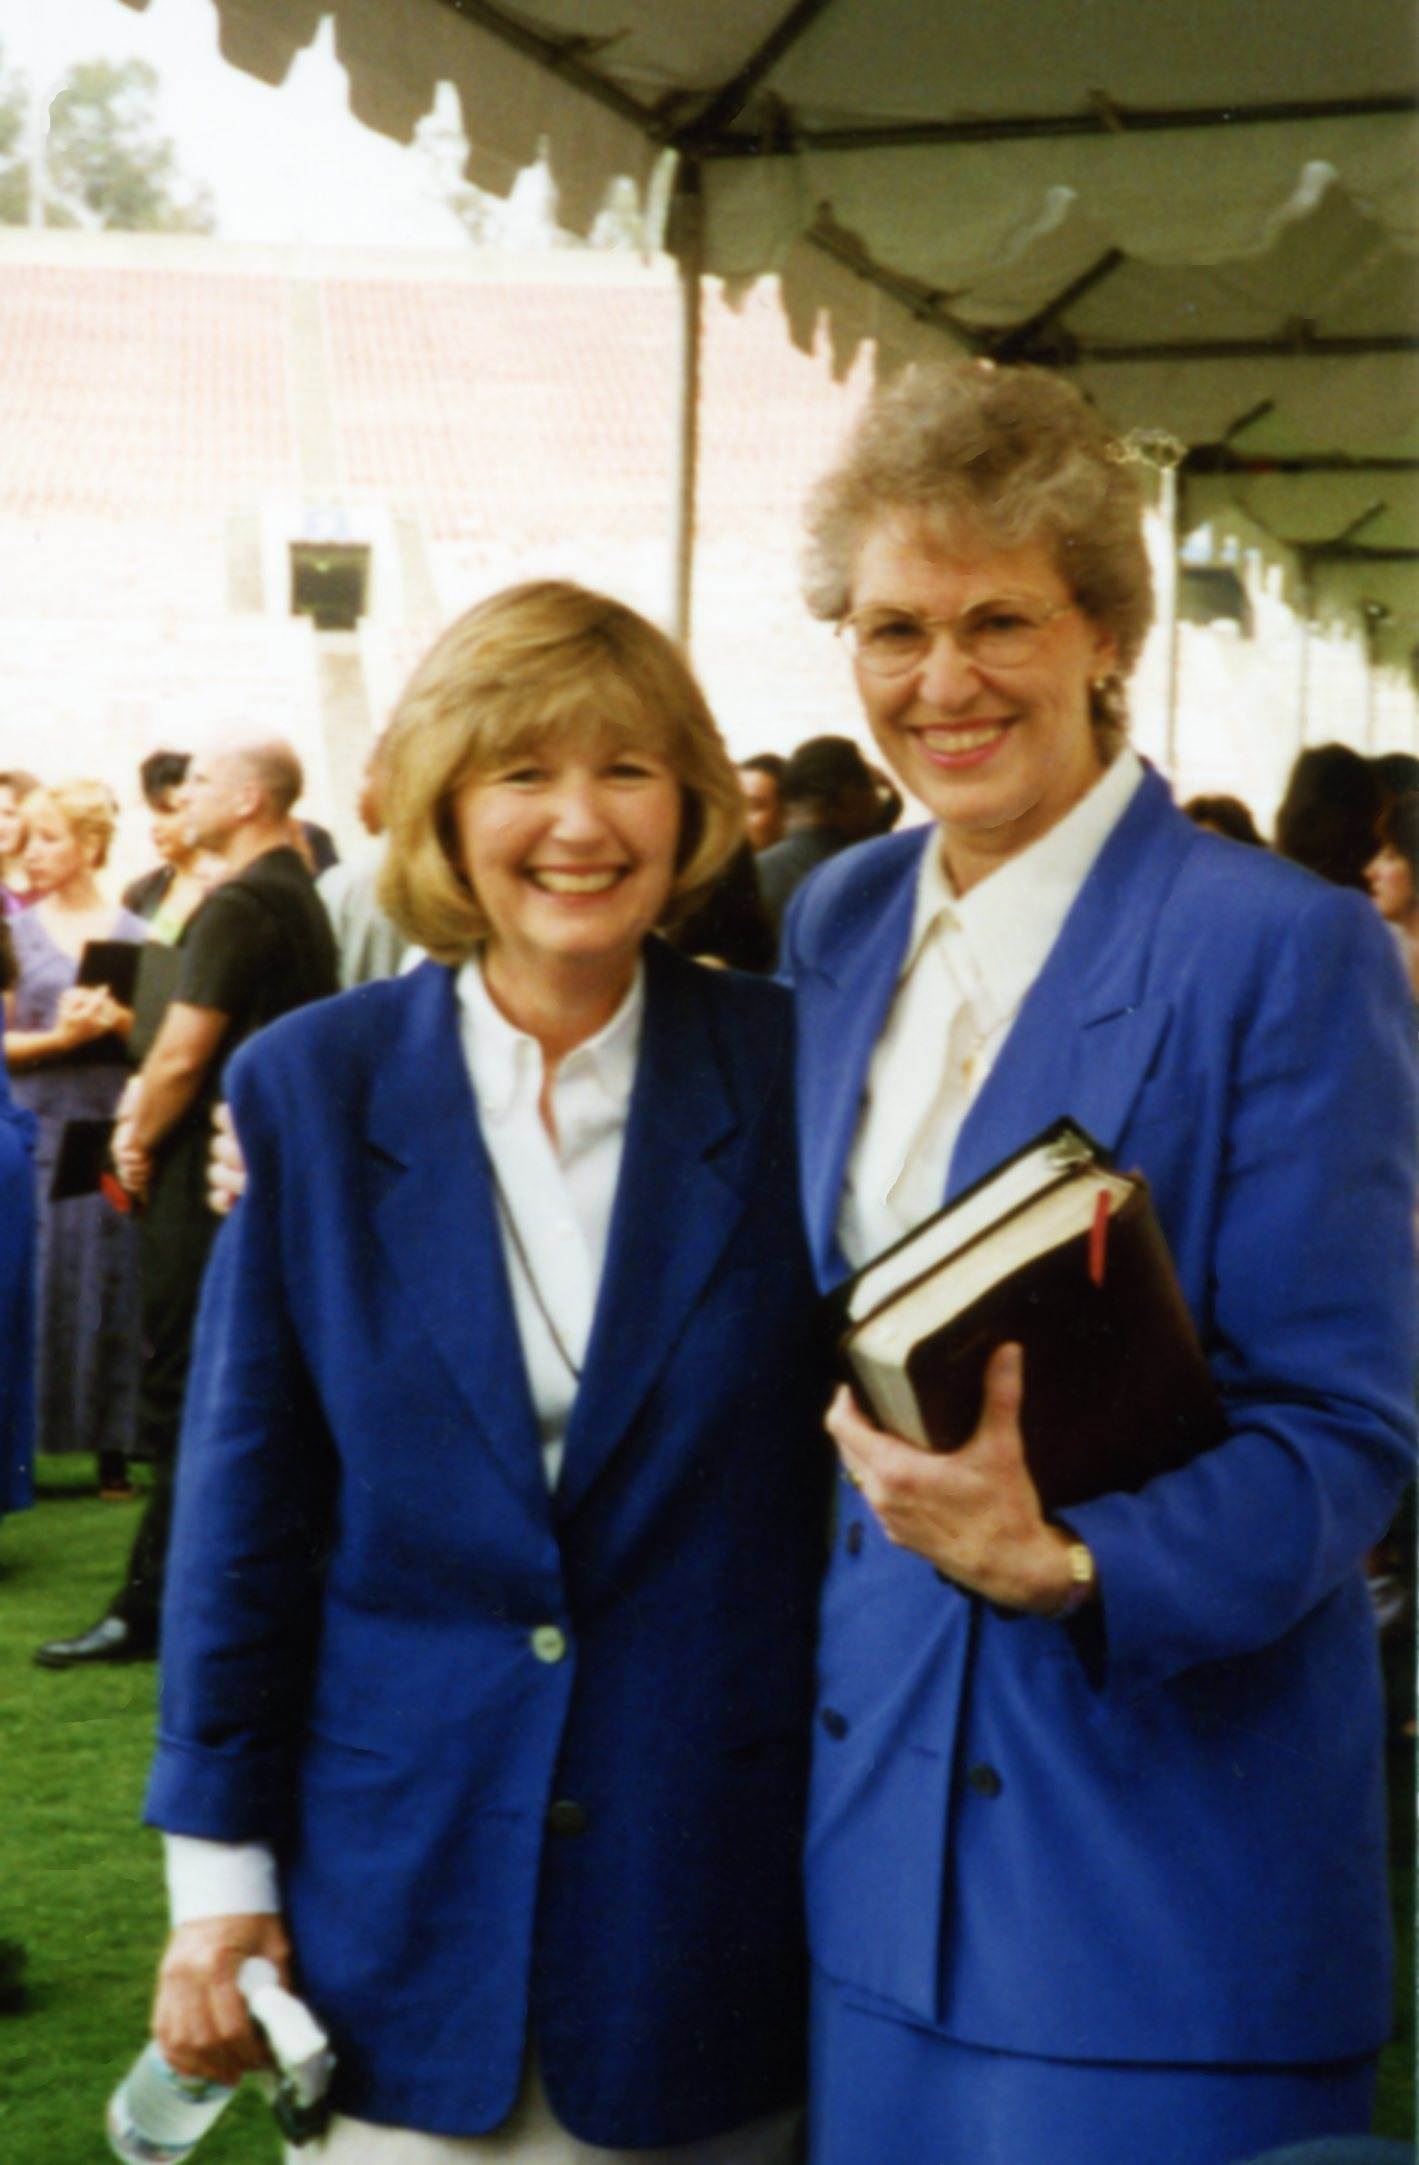 Susie Kimes and Jill Briscoe